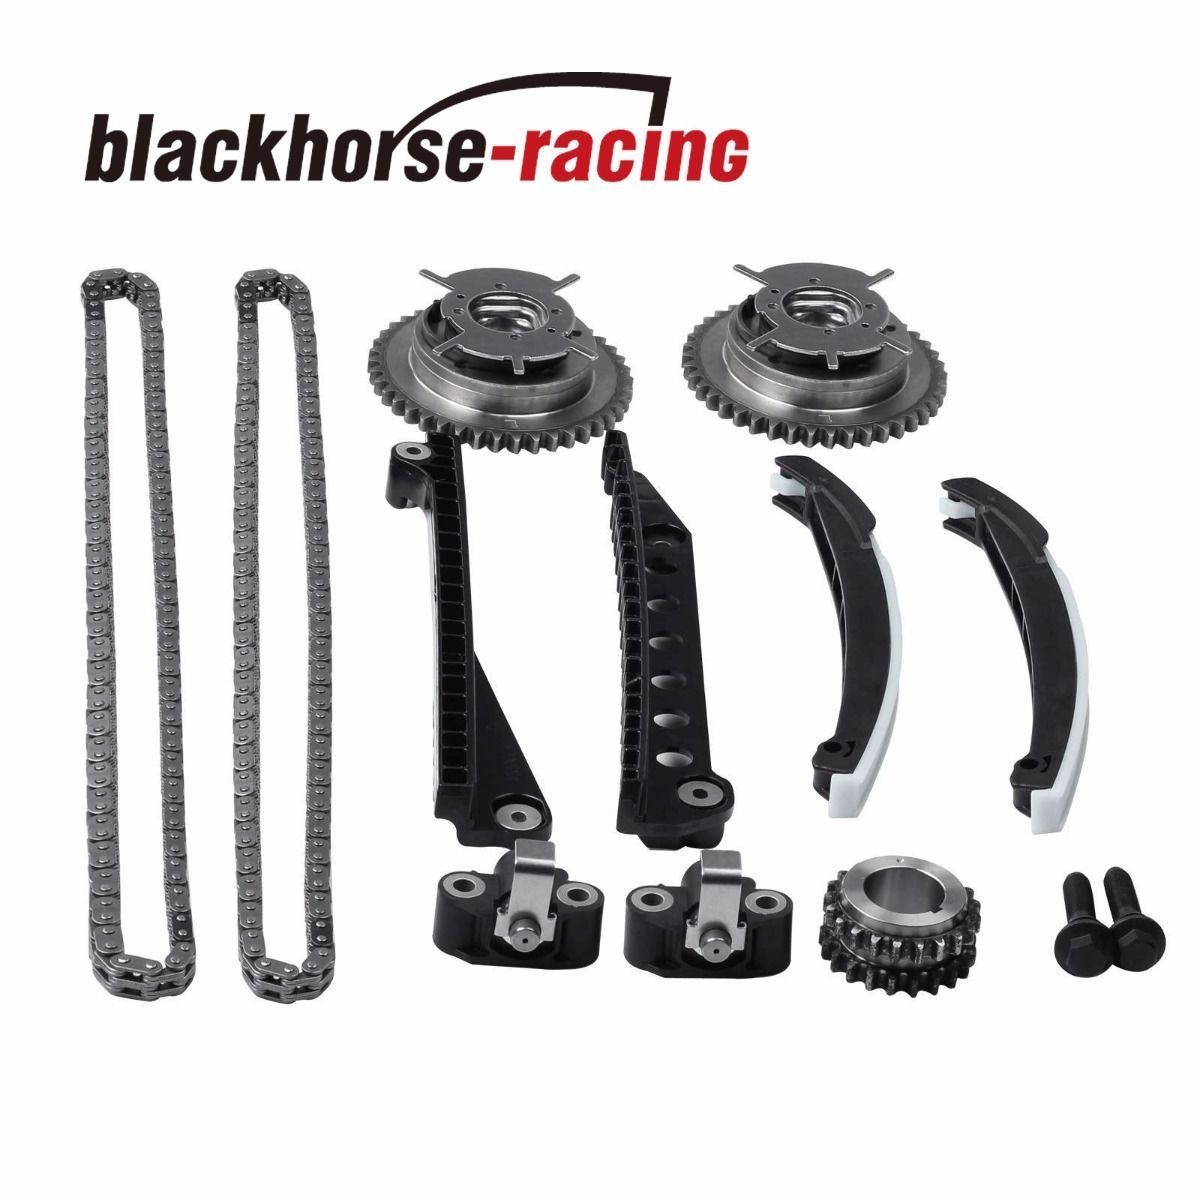 2004 Ford Ranger Regular Cab Camshaft: Timing Chain Oil&Water Pump+Cam Phasers Ford F150 Lincoln